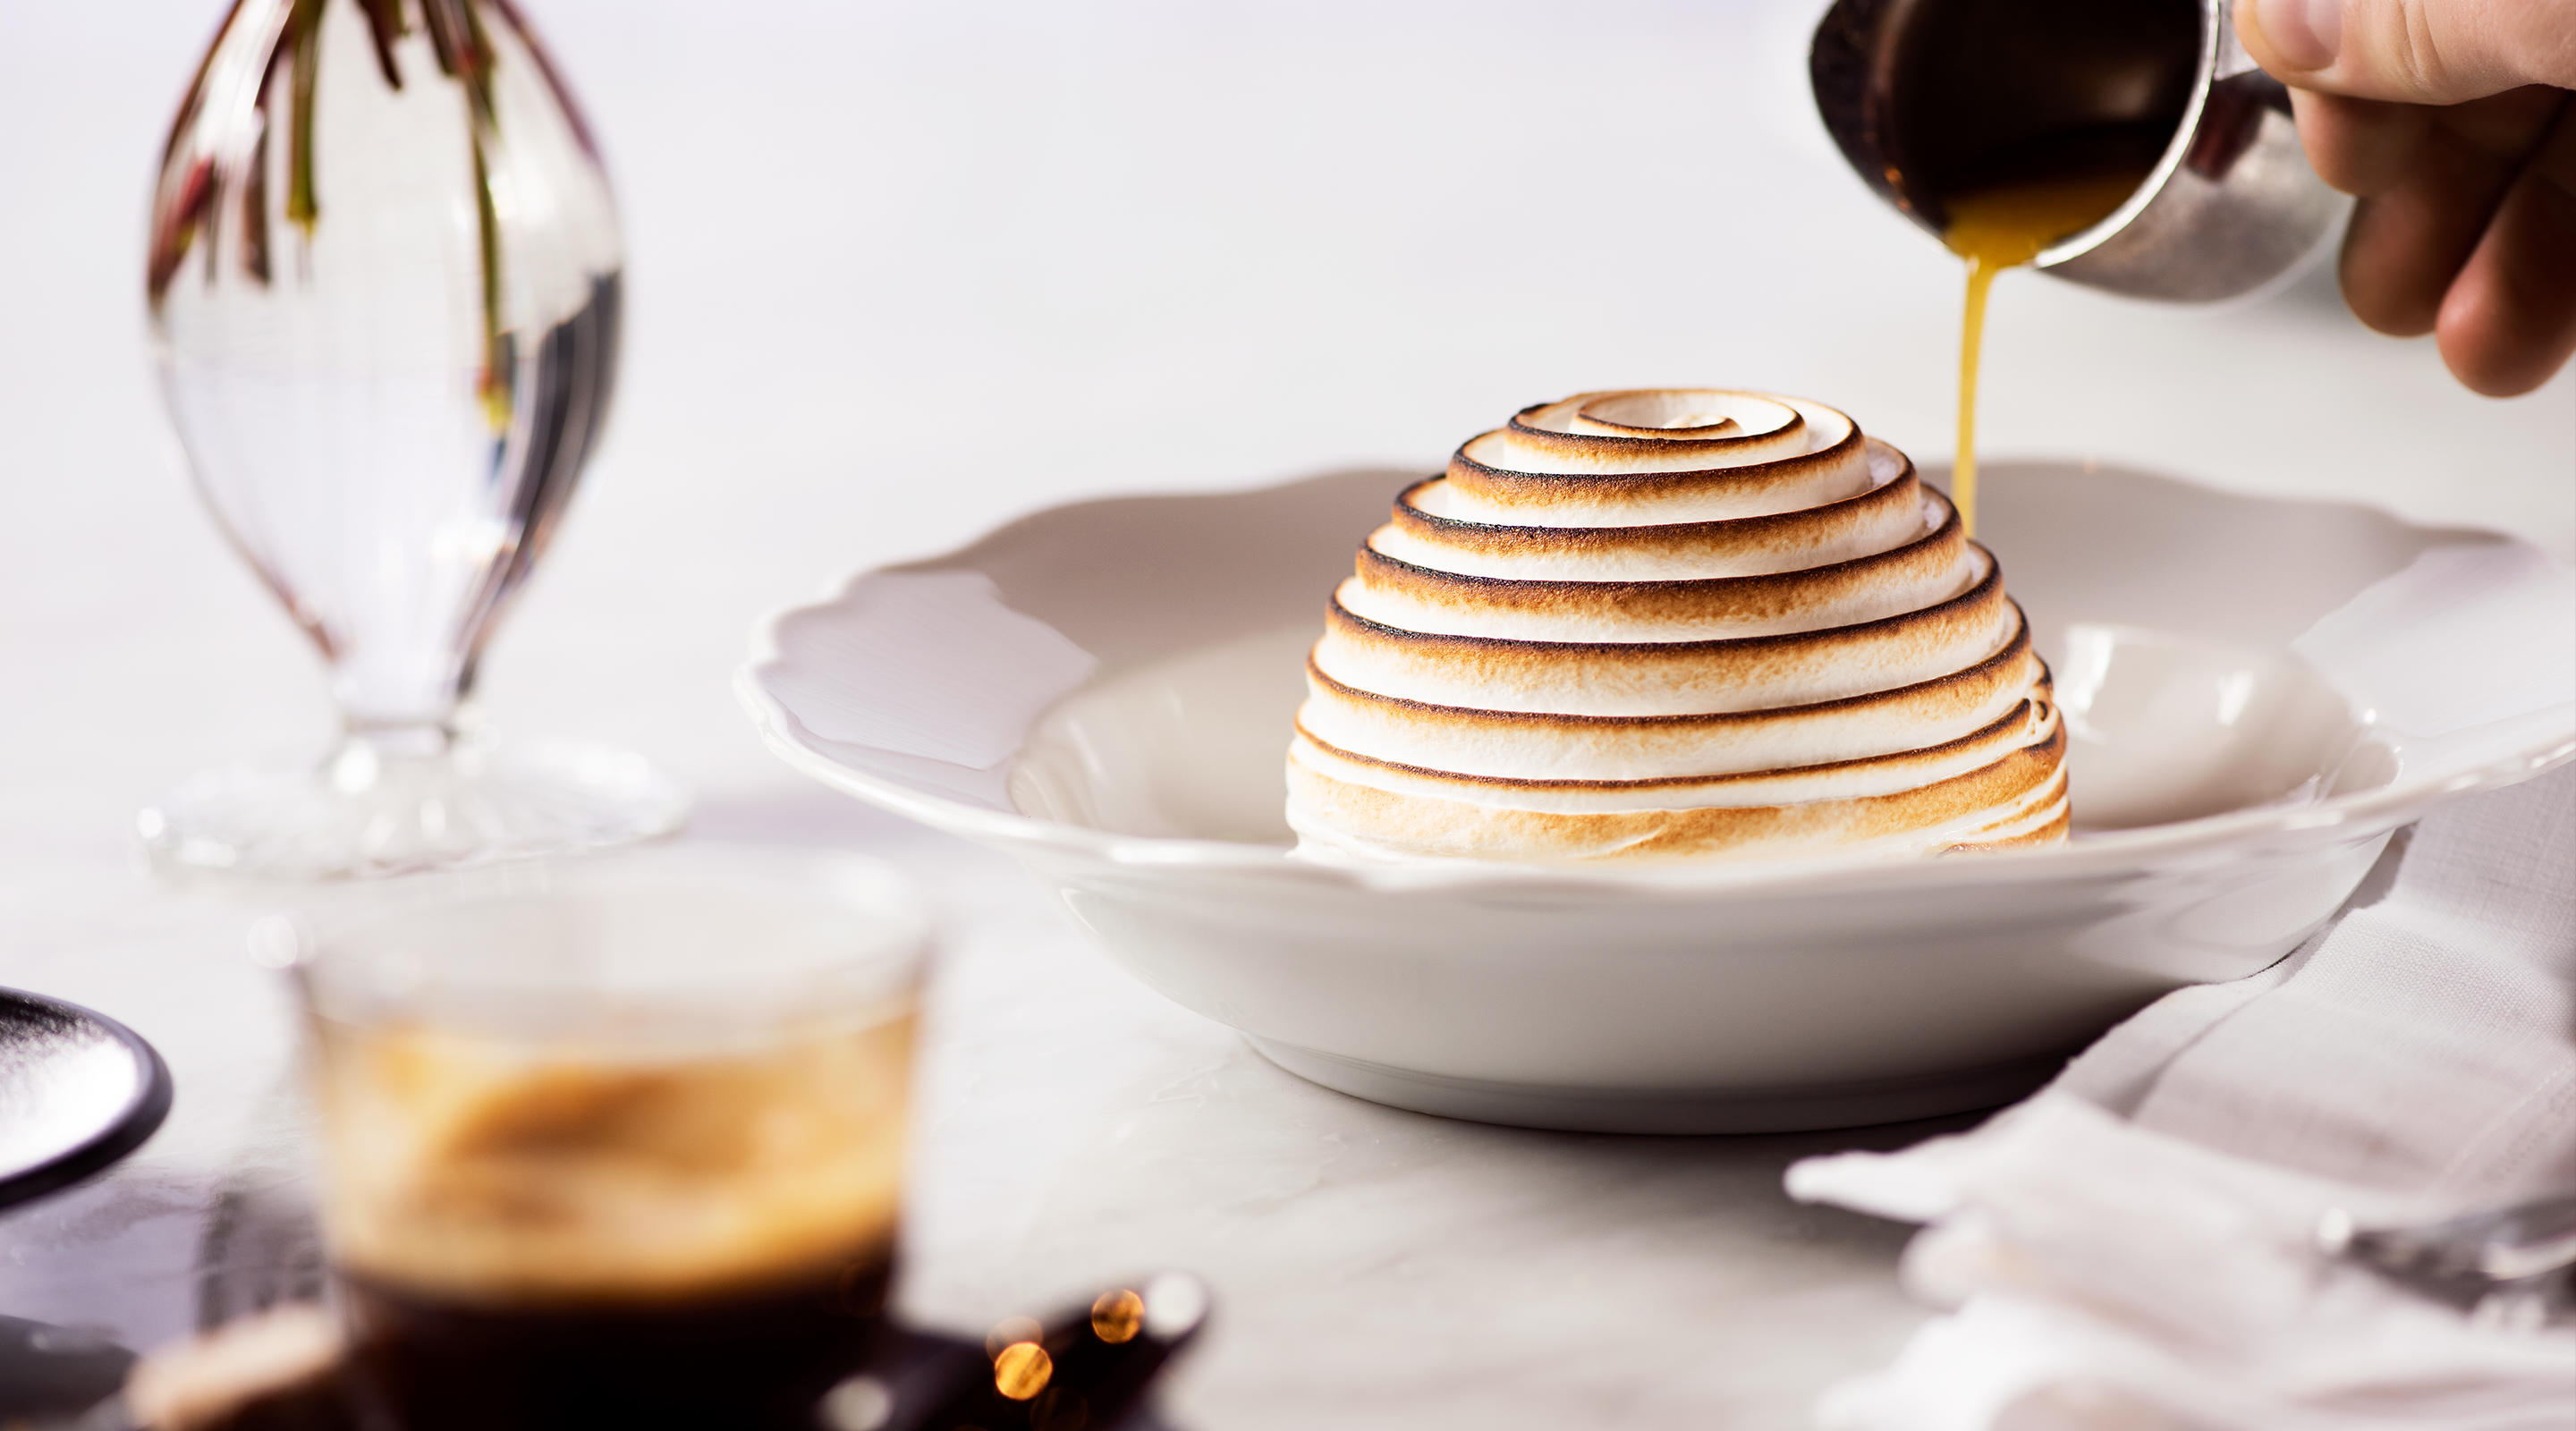 Tableside Baked Alaska